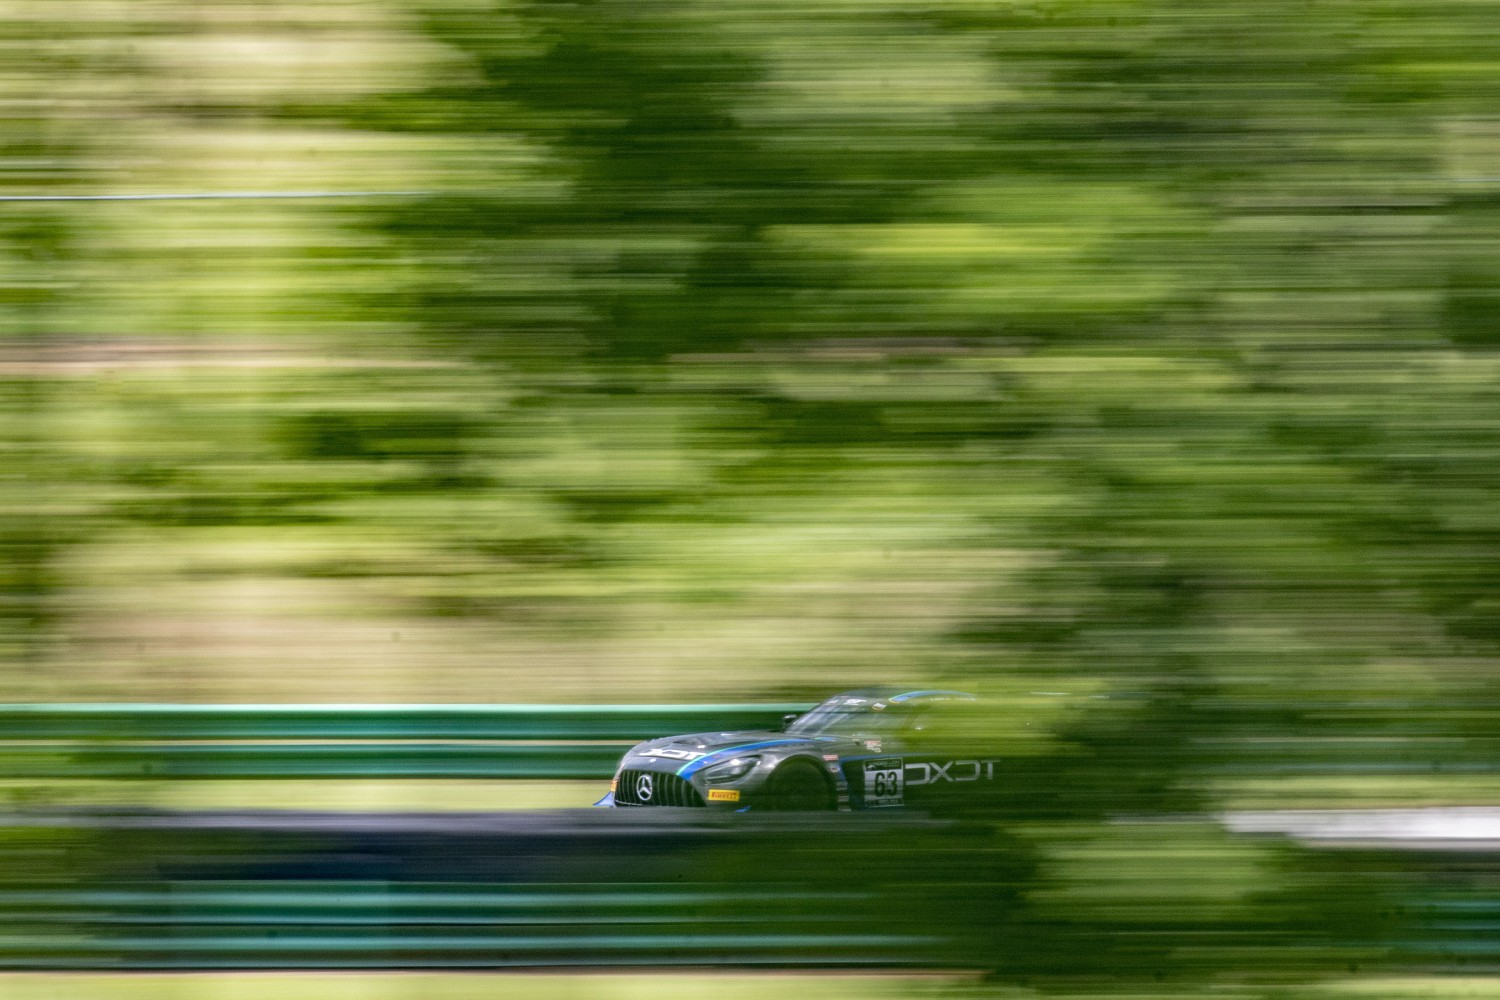 #63 GT3 Pro-Am, DXDT Racing, David Askew, Ryan Dalziel, Mercedes-AMG GT3\, 2020 SRO Motorsports Group - VIRginia International Raceway, Alton VA